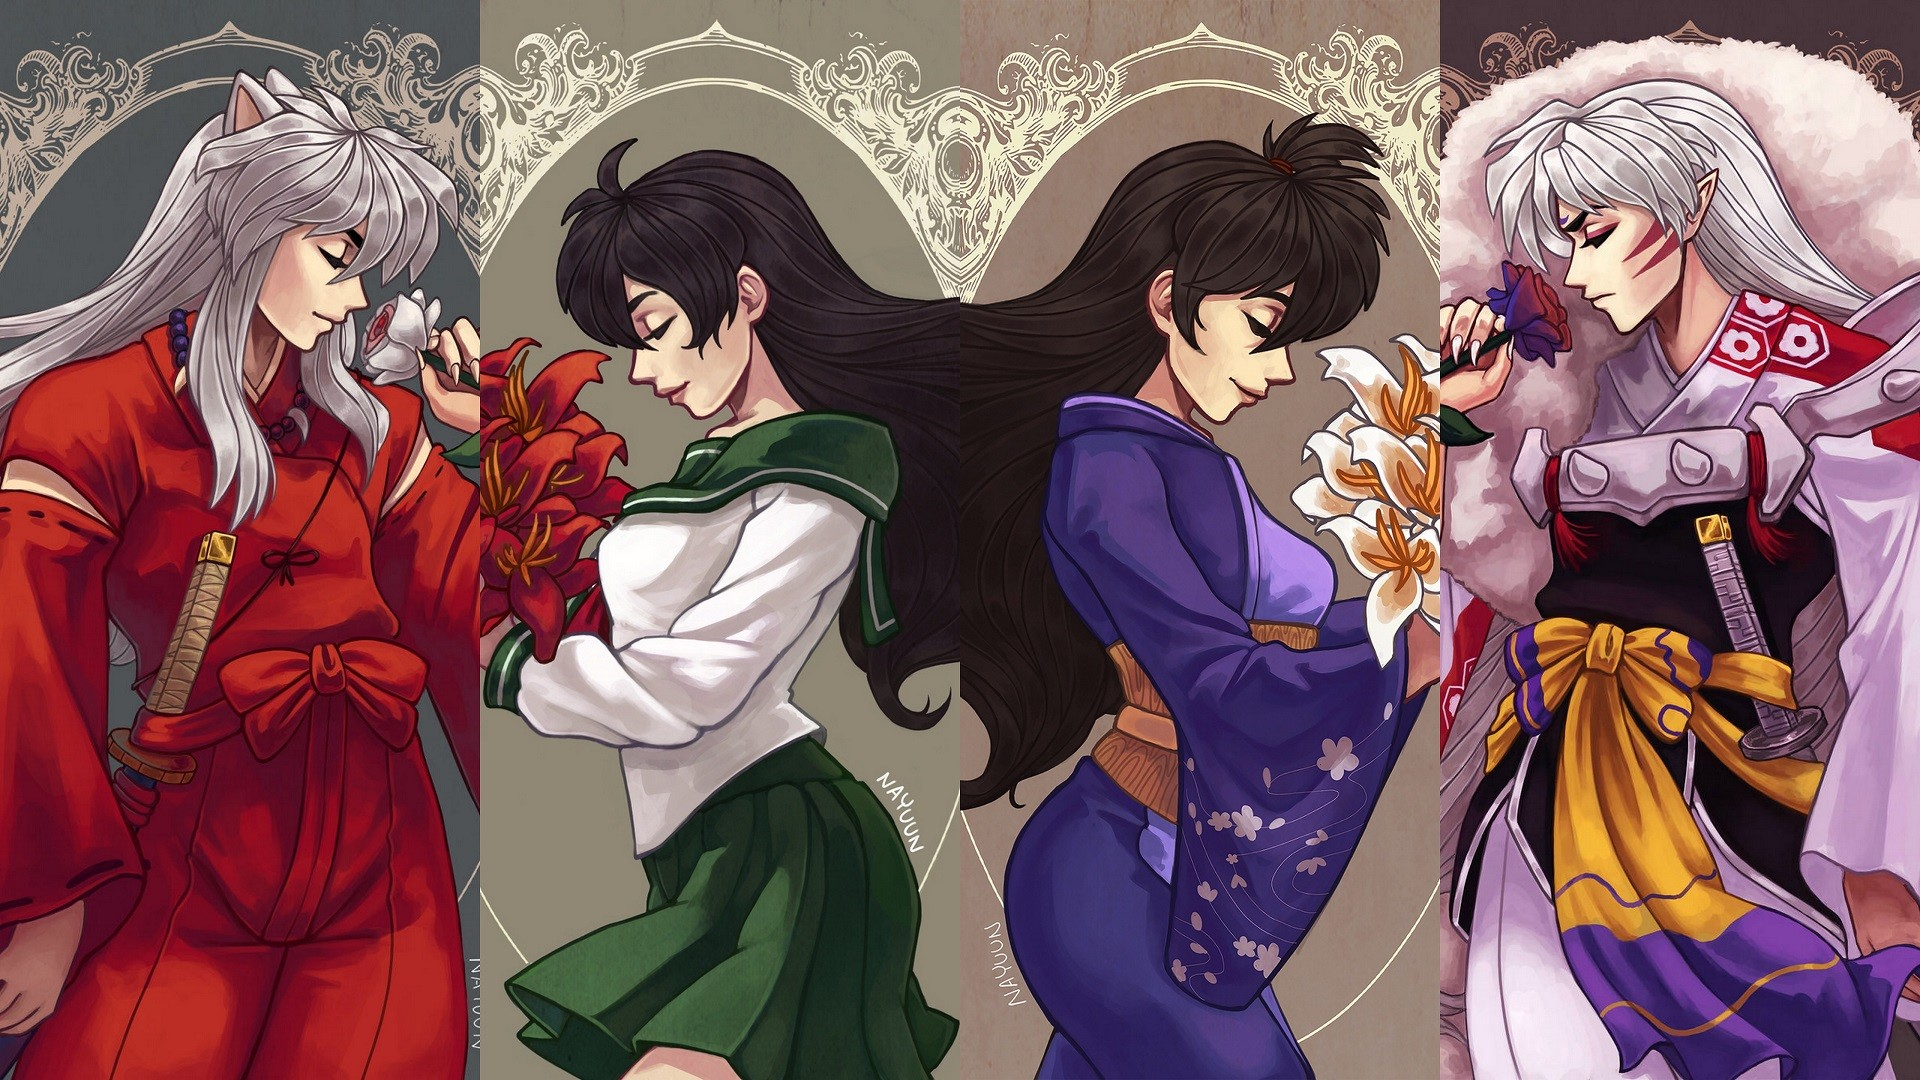 1920x1080 InuYasha HD Wallpaper | Background Image |  | ID:988924 - Wallpaper  Abyss